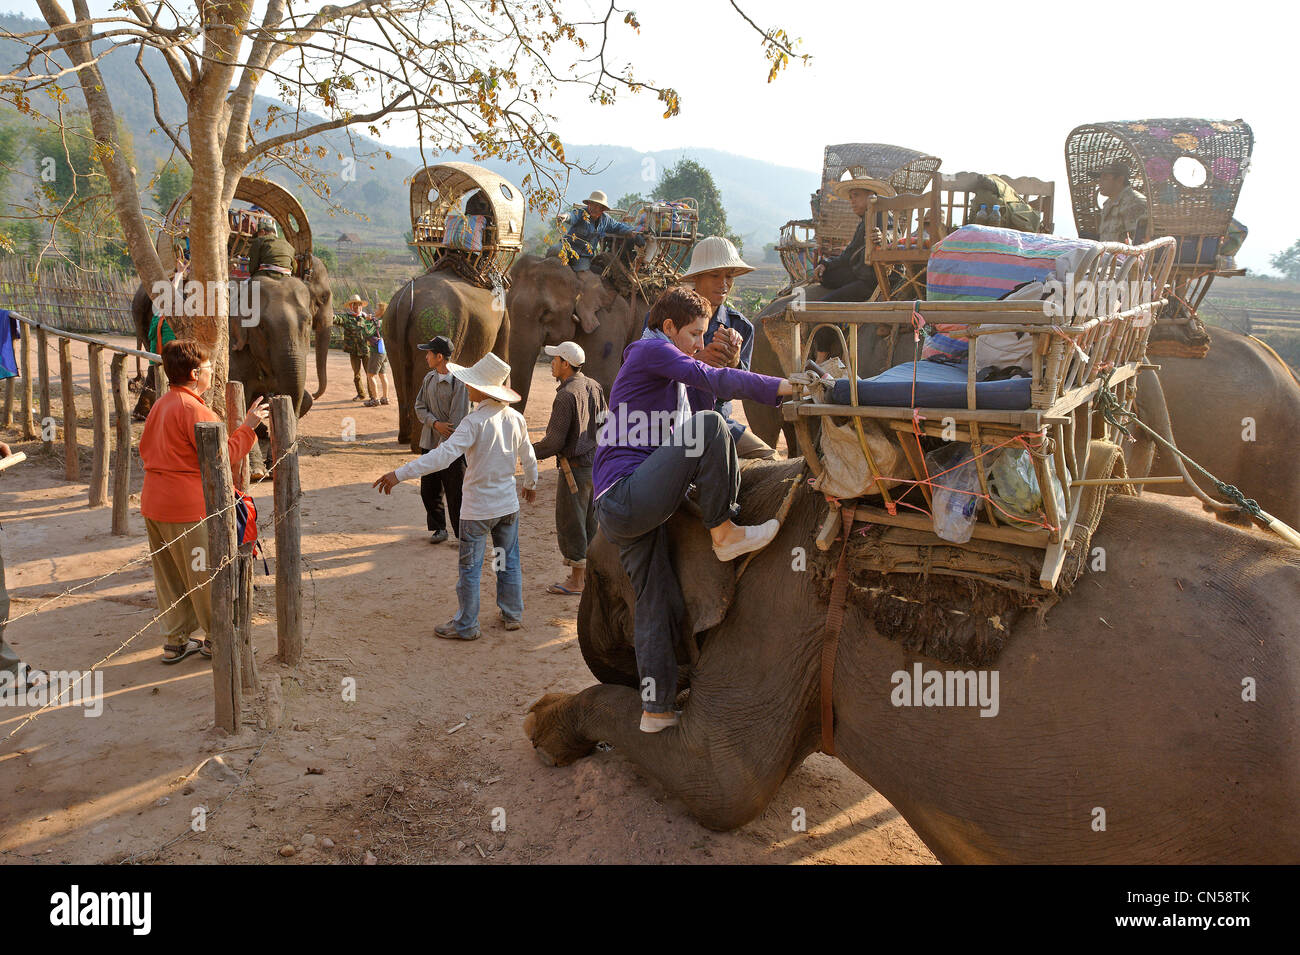 Laos, Sainyabuli Province, Ban Nam Thap, start trek by elephant - Stock Image